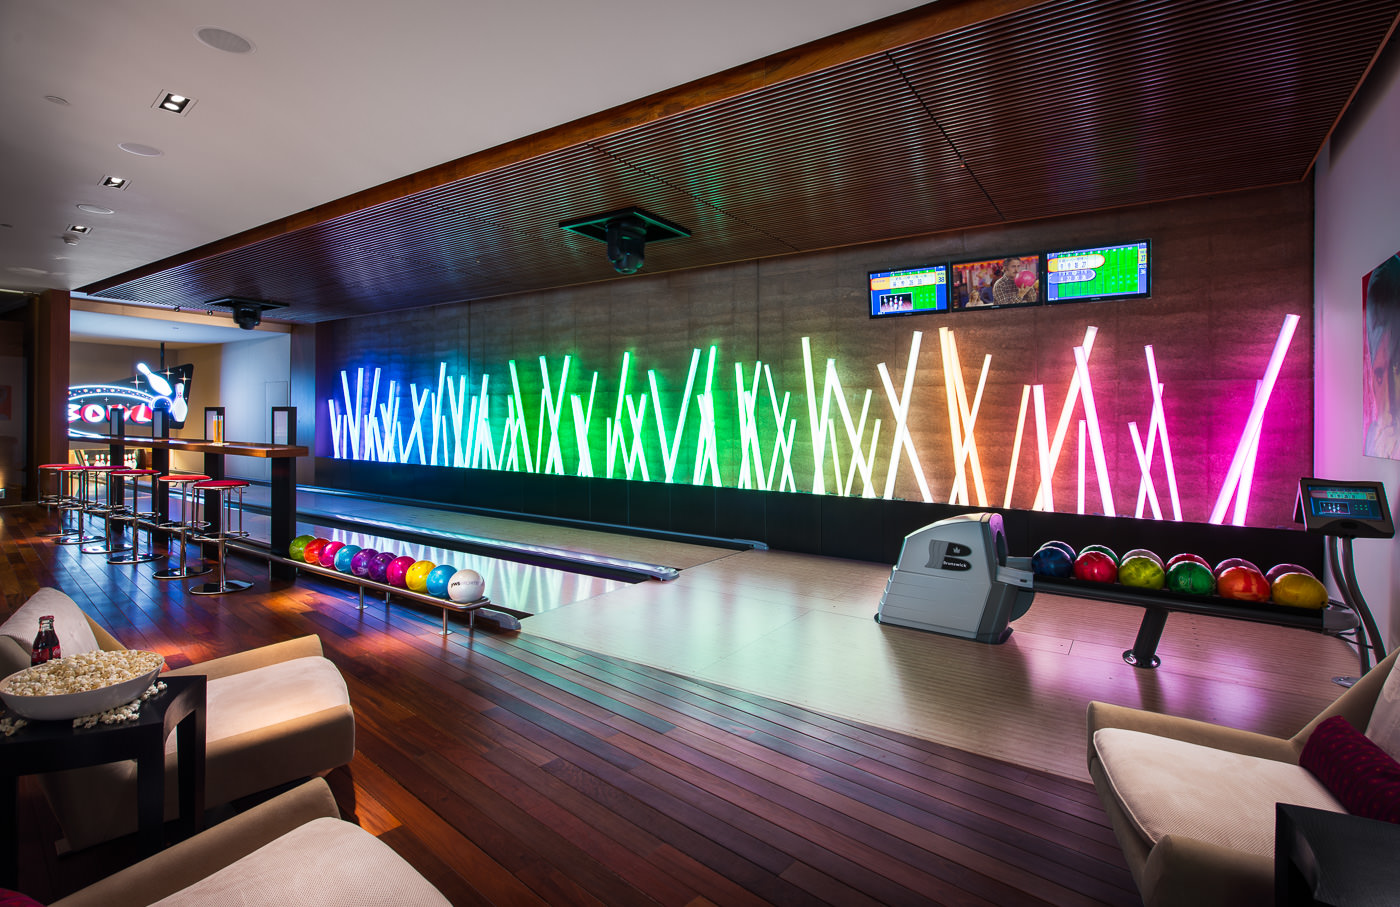 Private bowling alley interior design ideas for Bar interieur maison